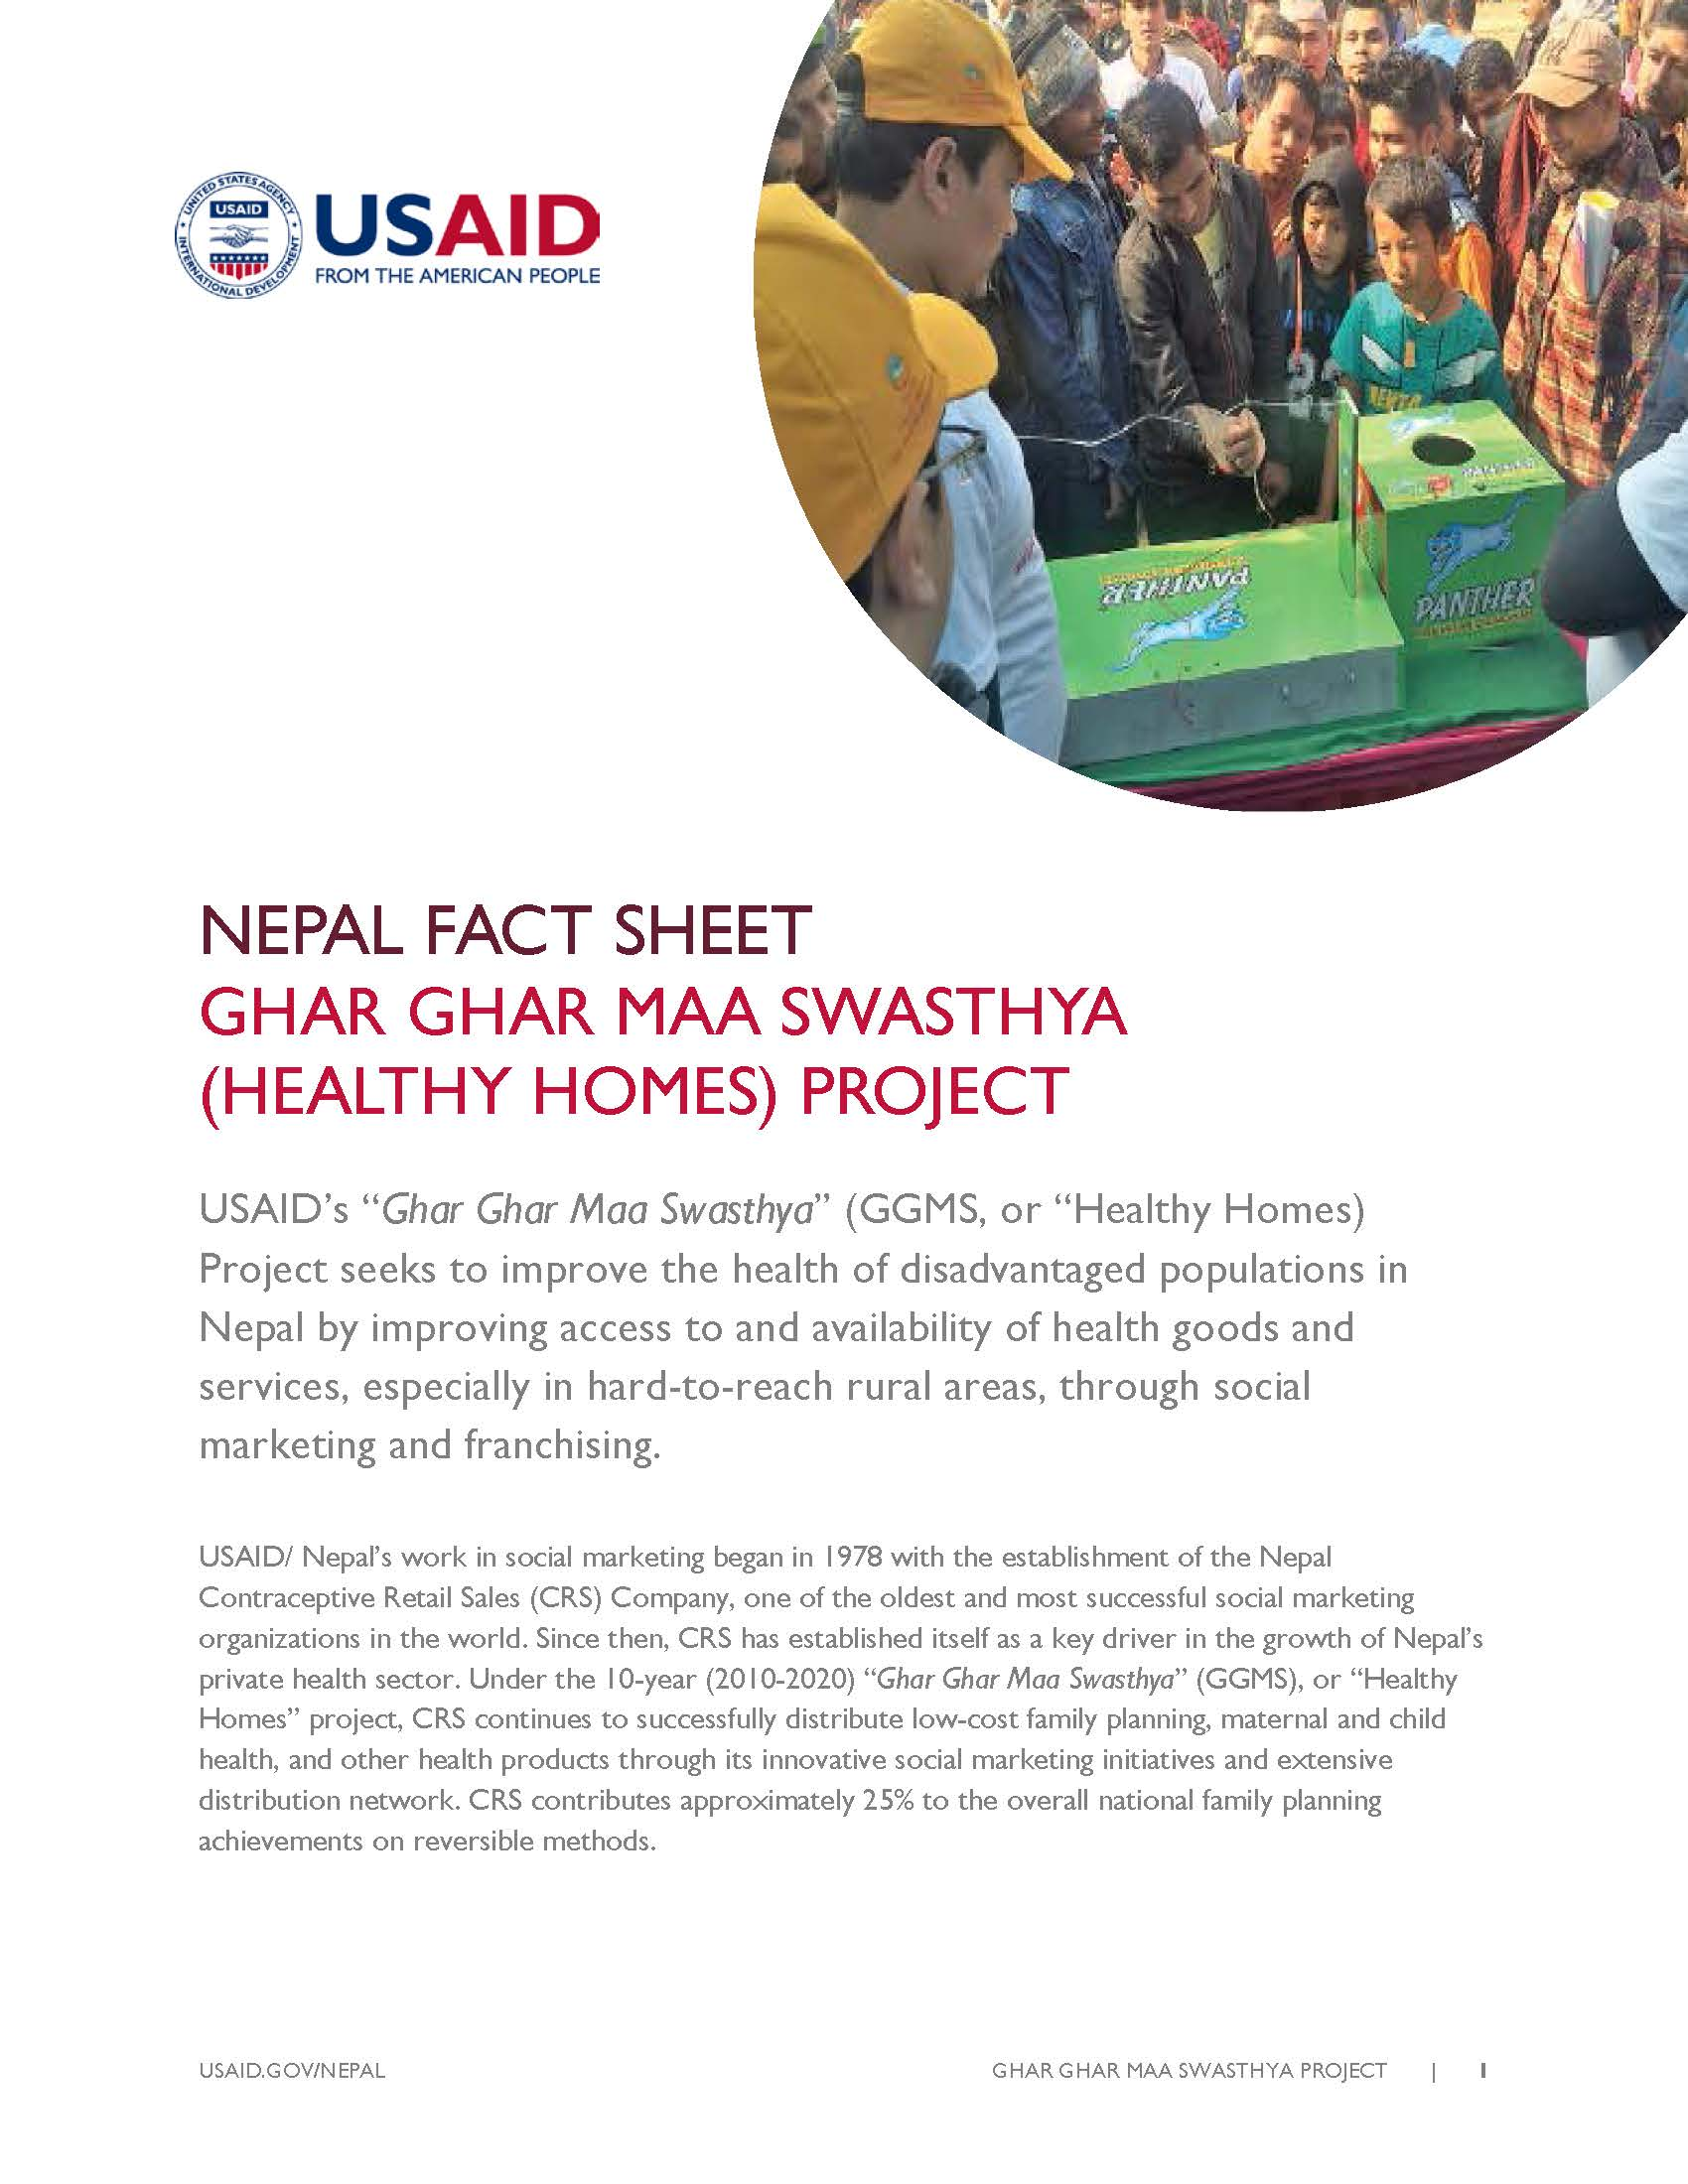 FACTSHEET : GHAR GHAR MAA SWASTHYA (HEALTHY HOMES) PROJECT